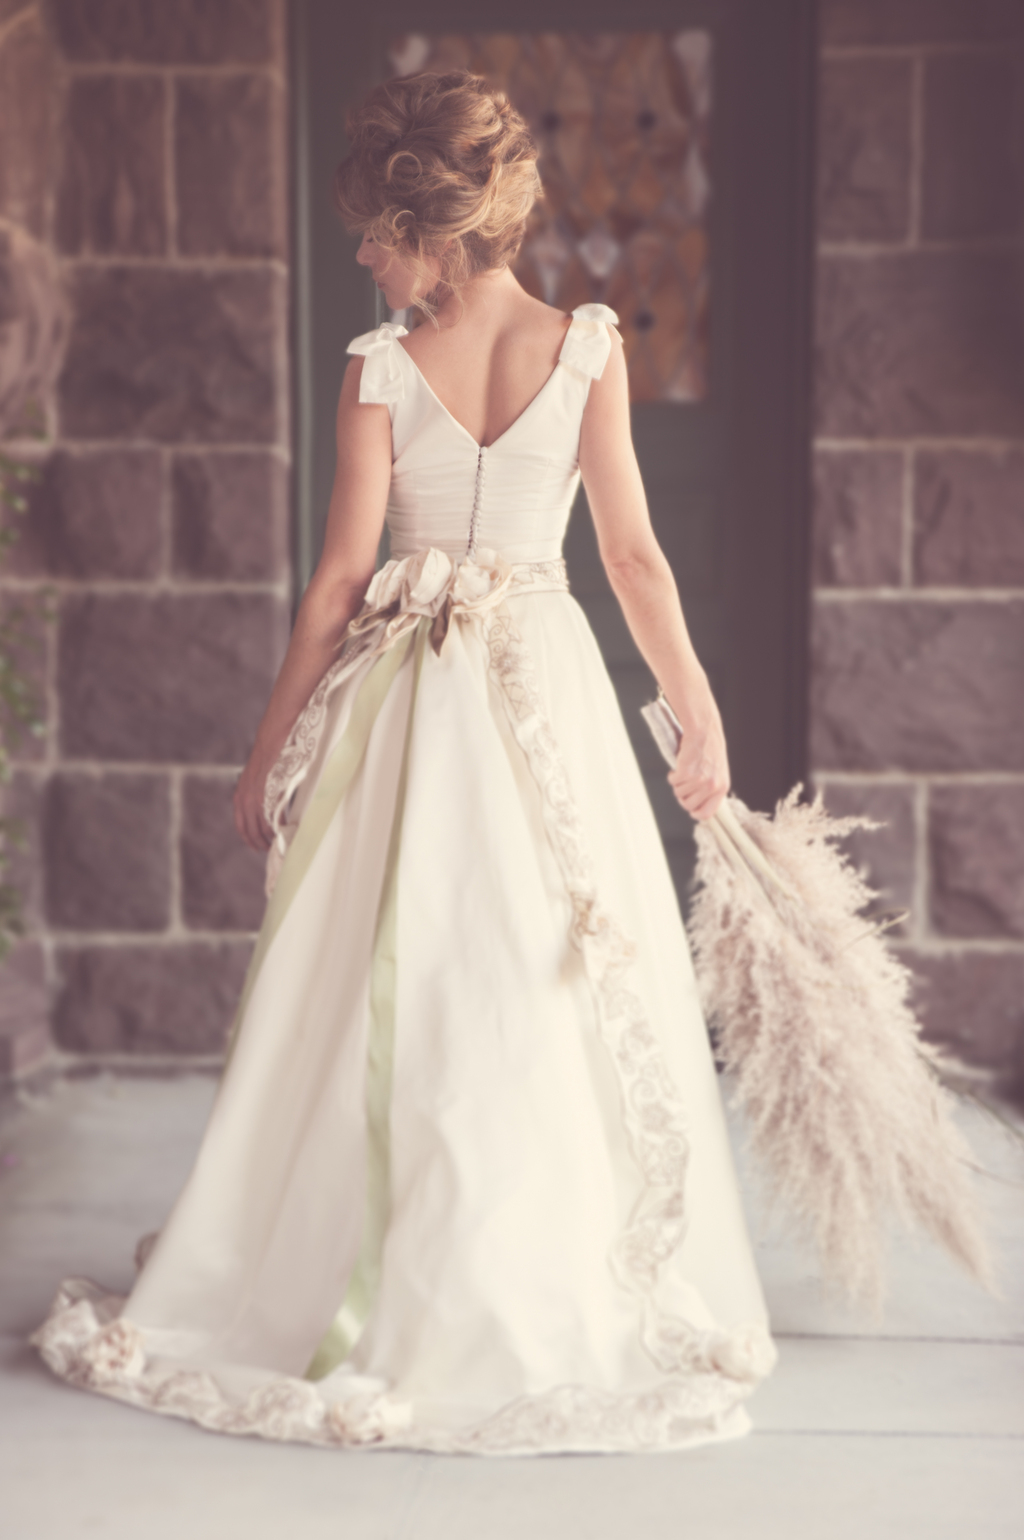 Wedding-dresses-for-the-vintage-bride-bouffant-bridal-gowns-accessories-2b.full